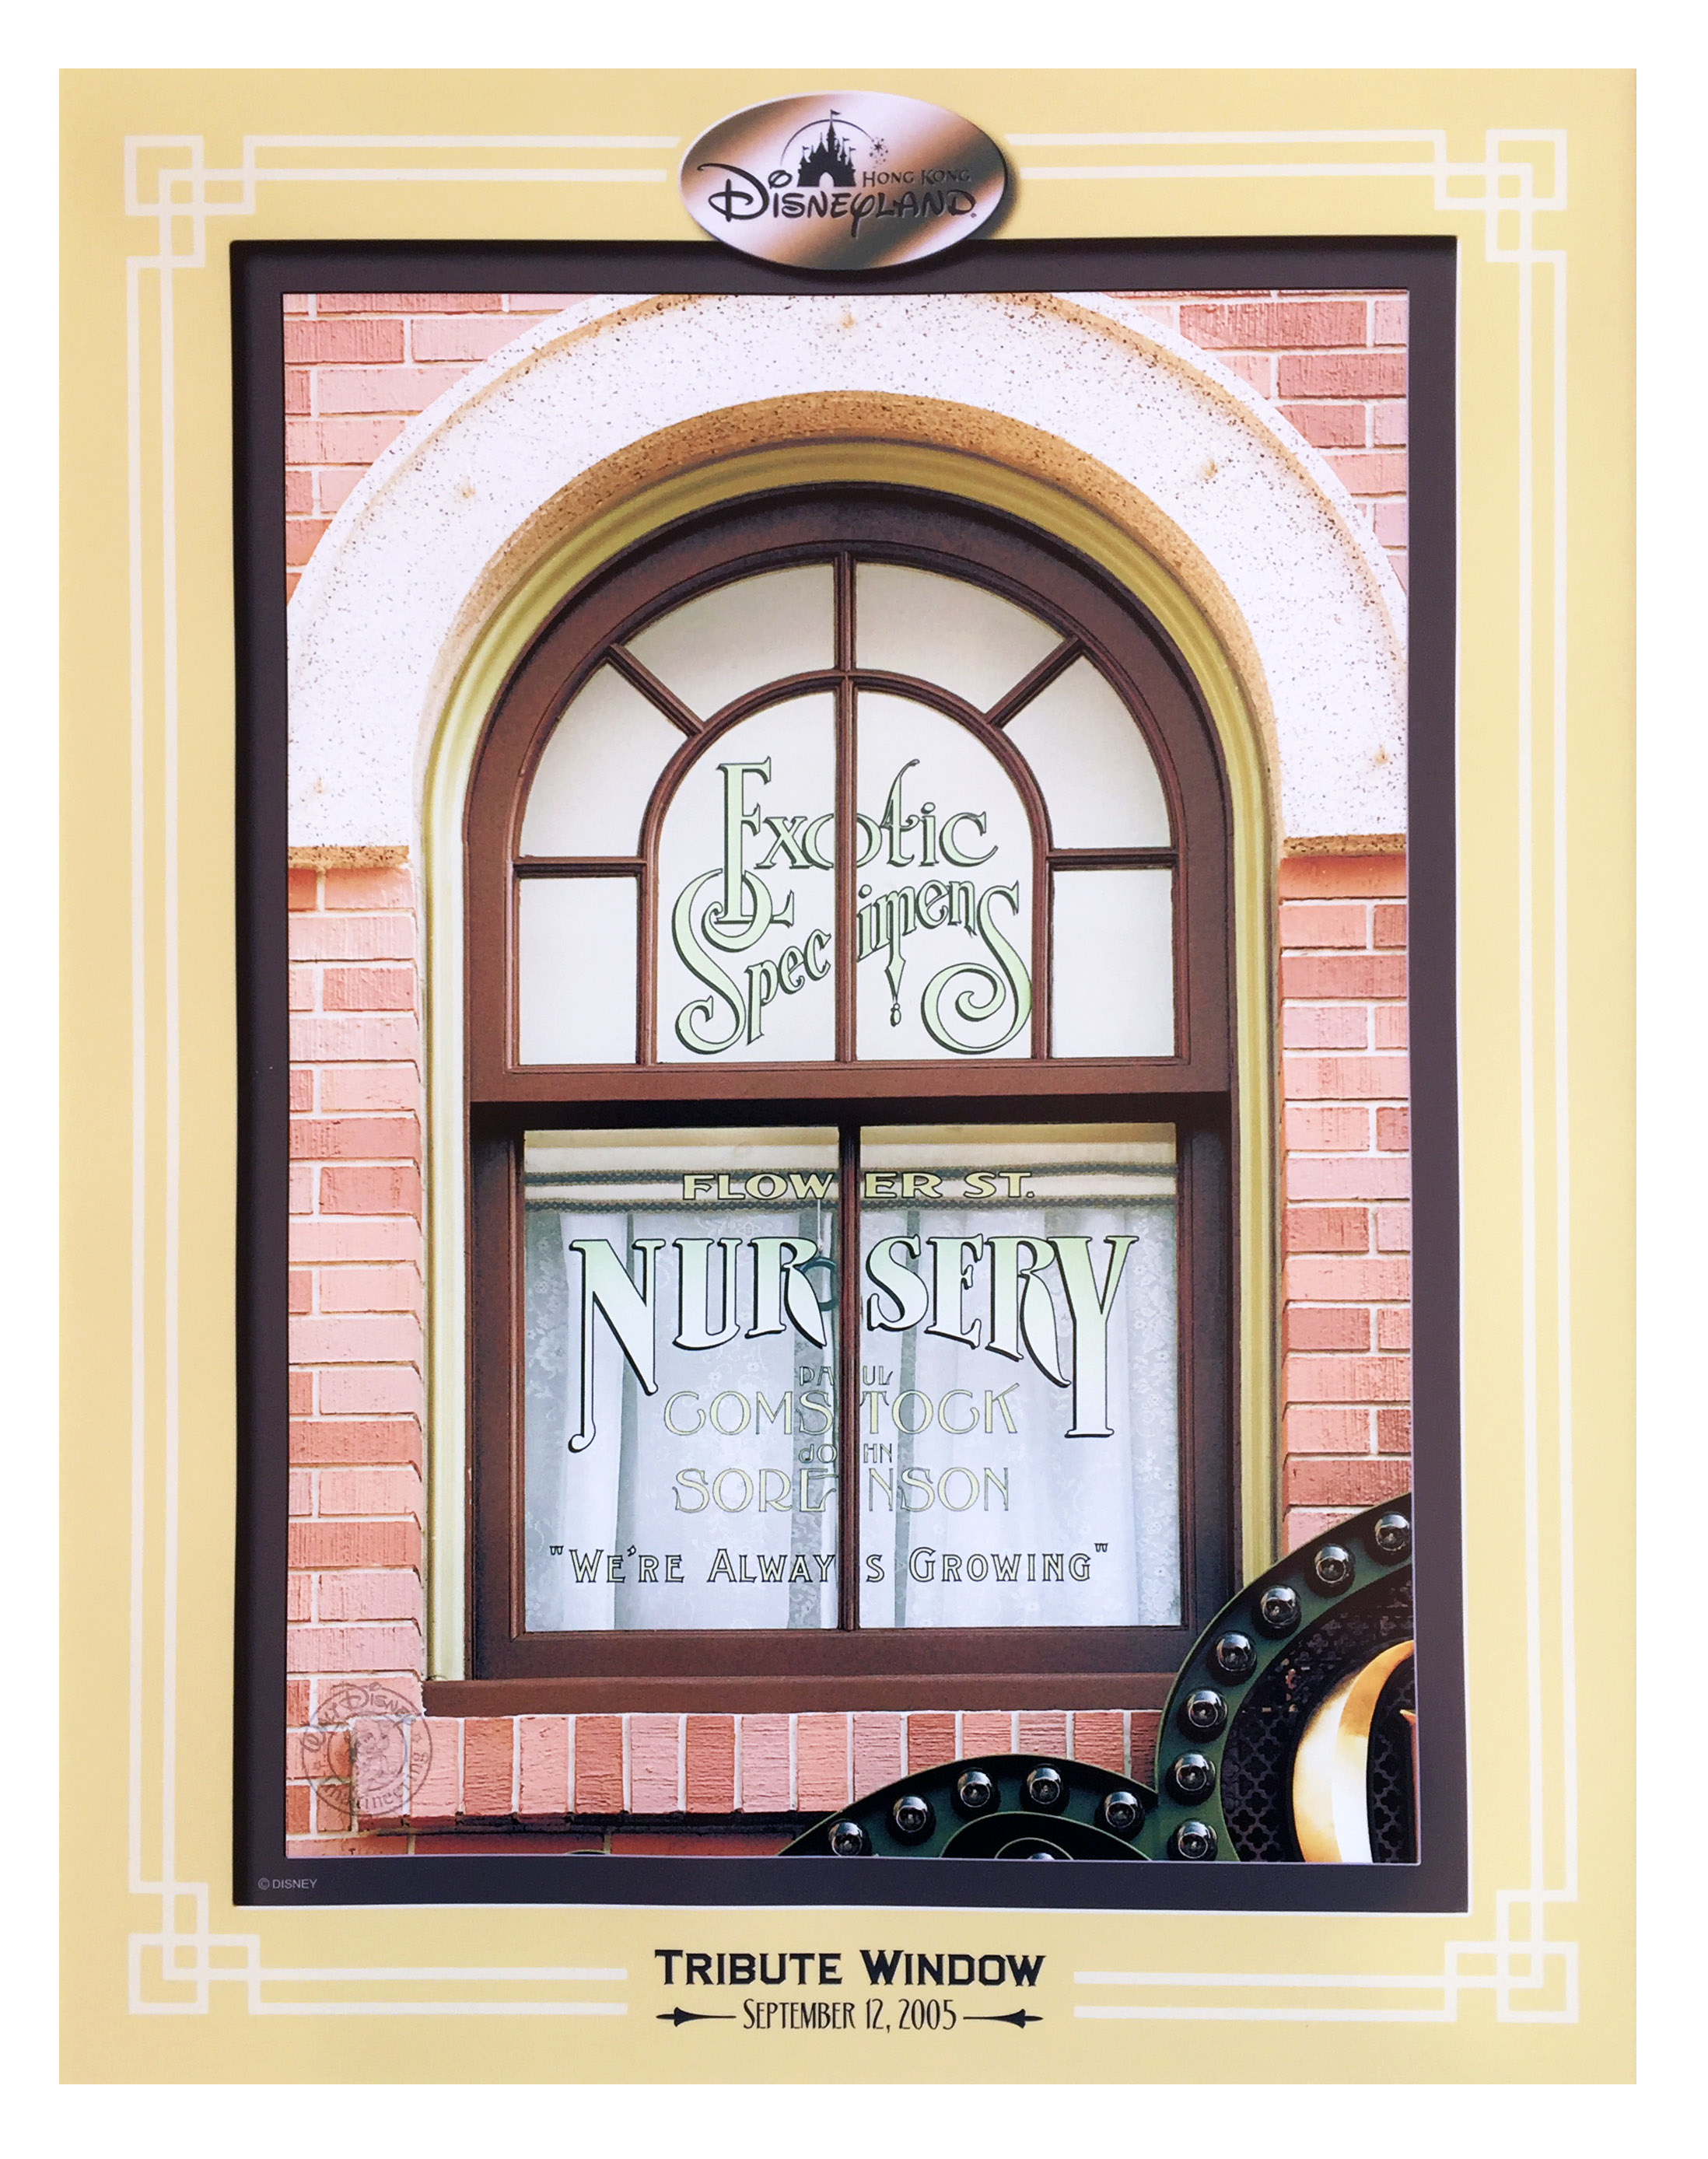 """The Walt Disney Company honored Comstock with a window on Main Street over the Curiosity Shop, proclaiming """" Landscape Specialists - we're always growing"""" ."""